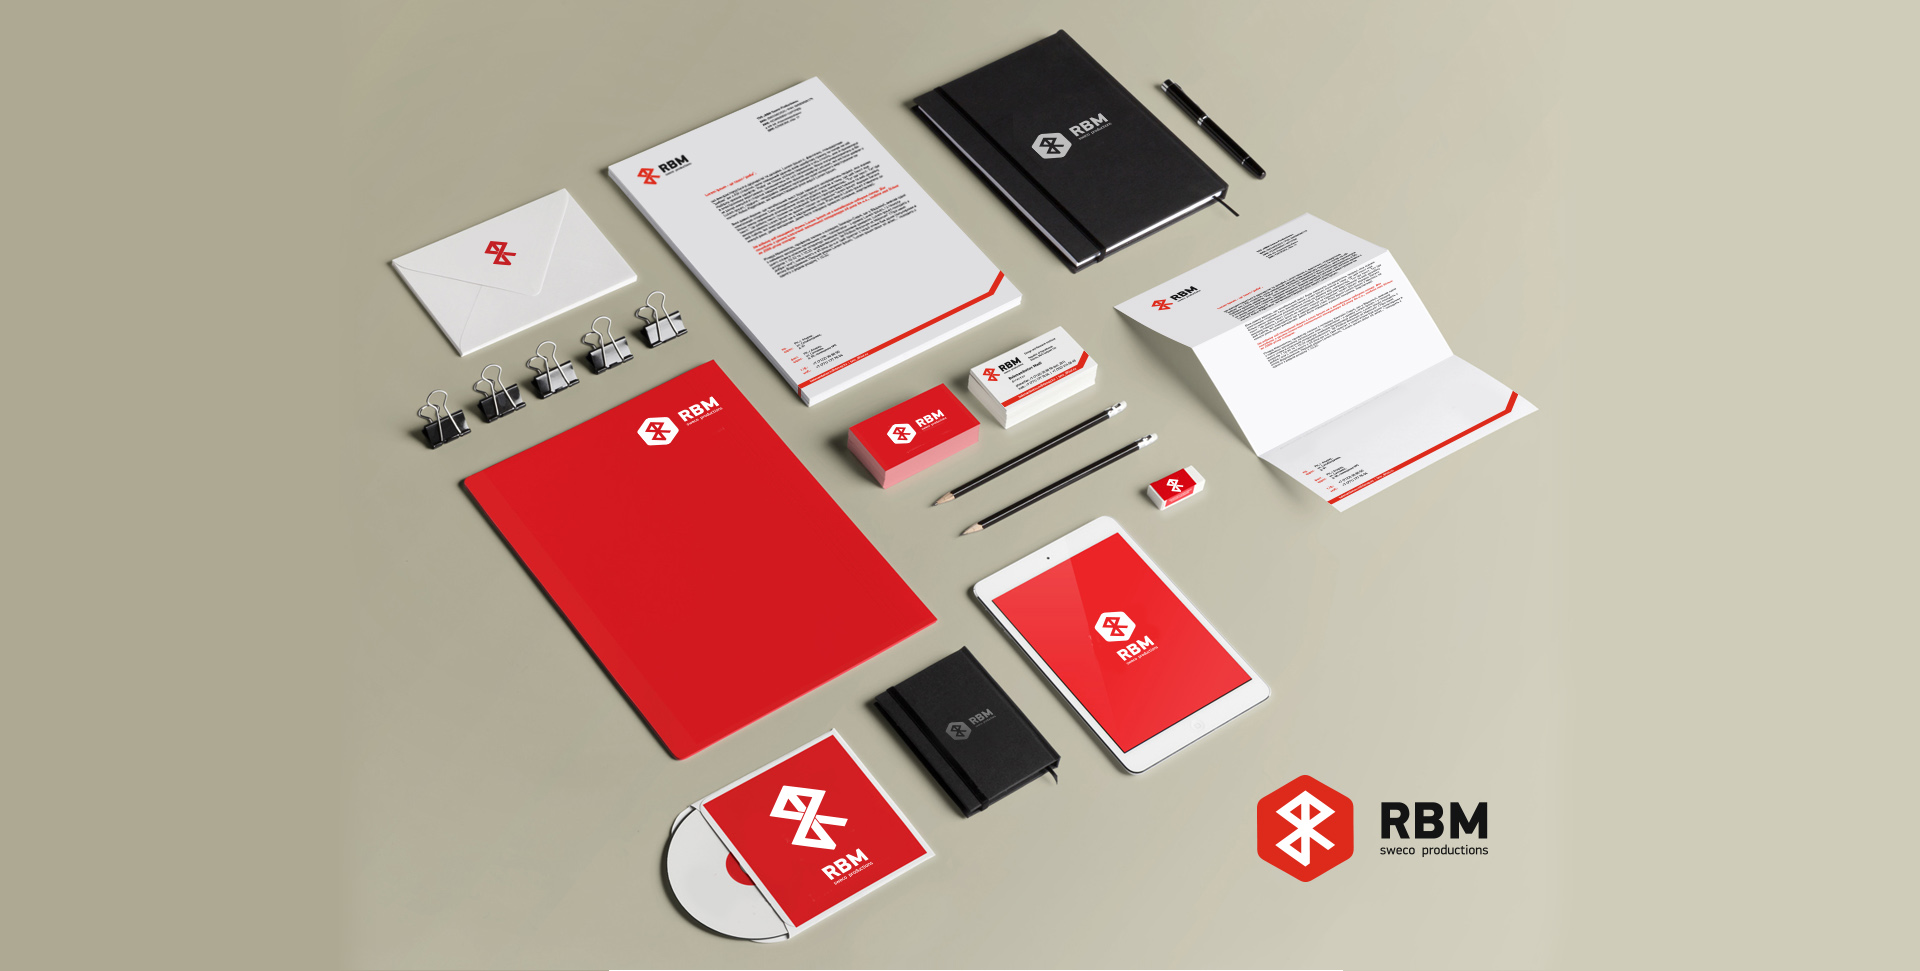 Сorporate identity инжиниринговой компании, Engineering company corporate identity